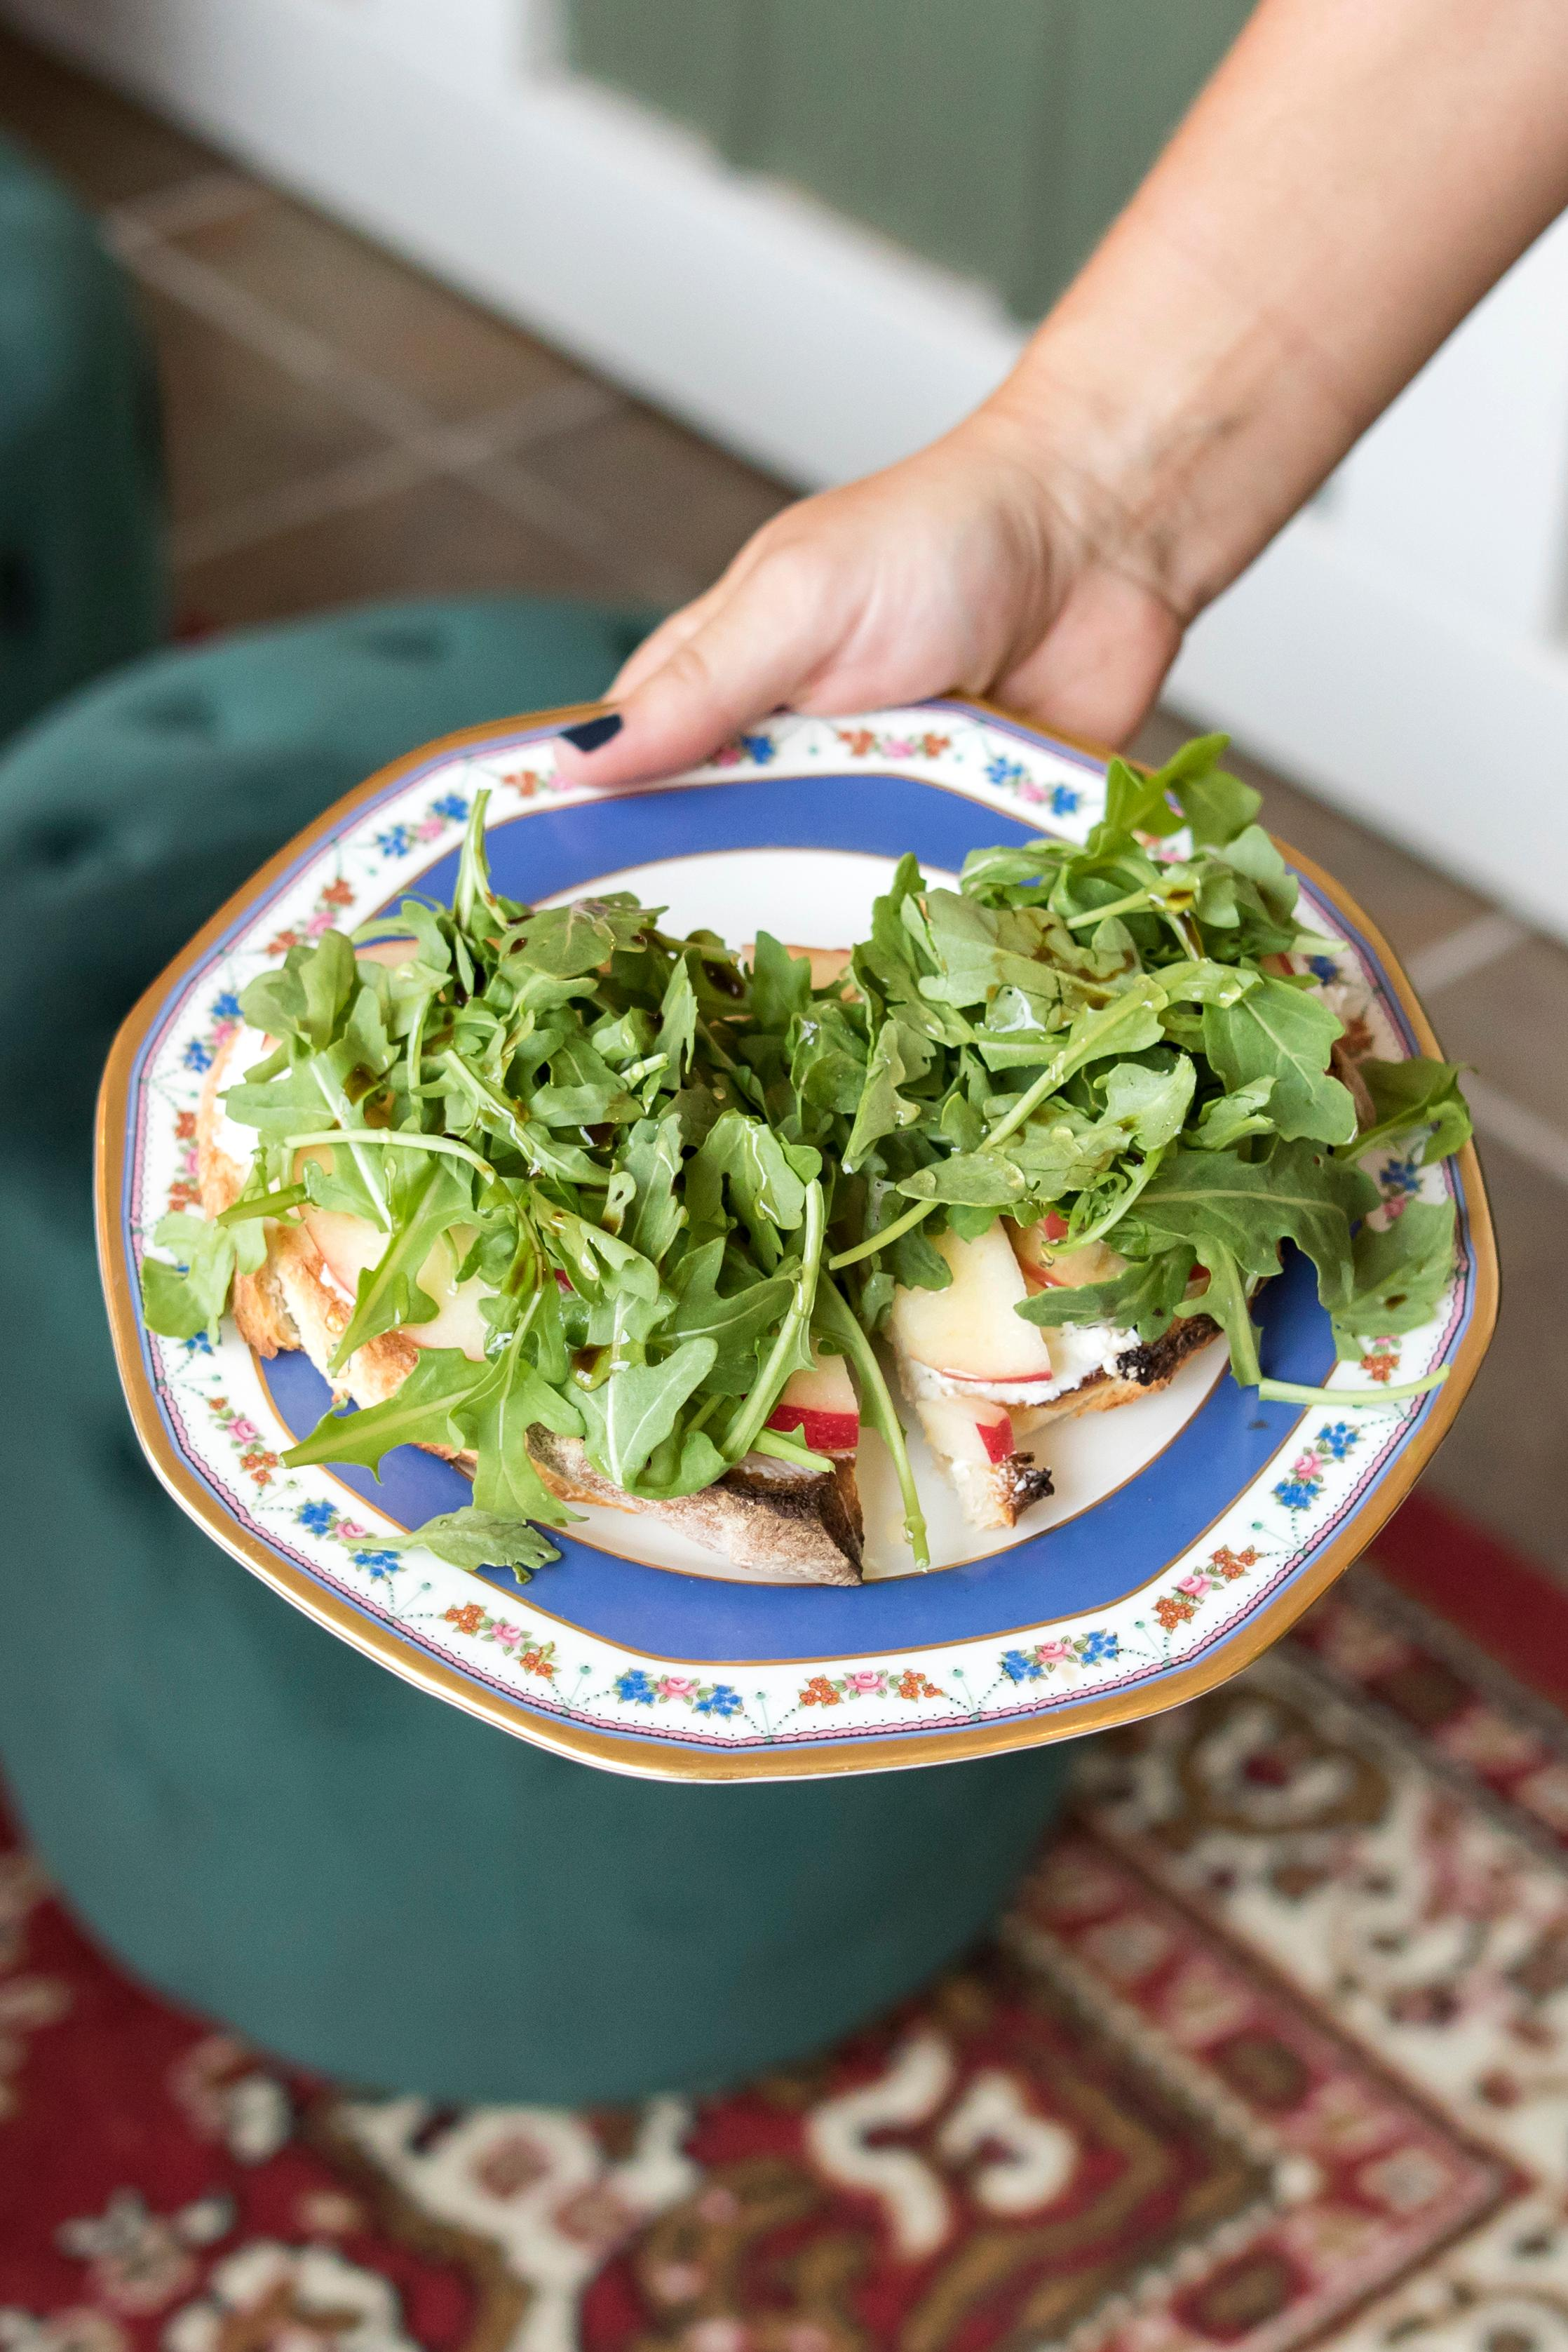 Drunken Goat: goat and ricotta cheese, apple slices, arugula, honey, and basic vinegar / Image: Allison McAdams{ }// Published: 7.1.19